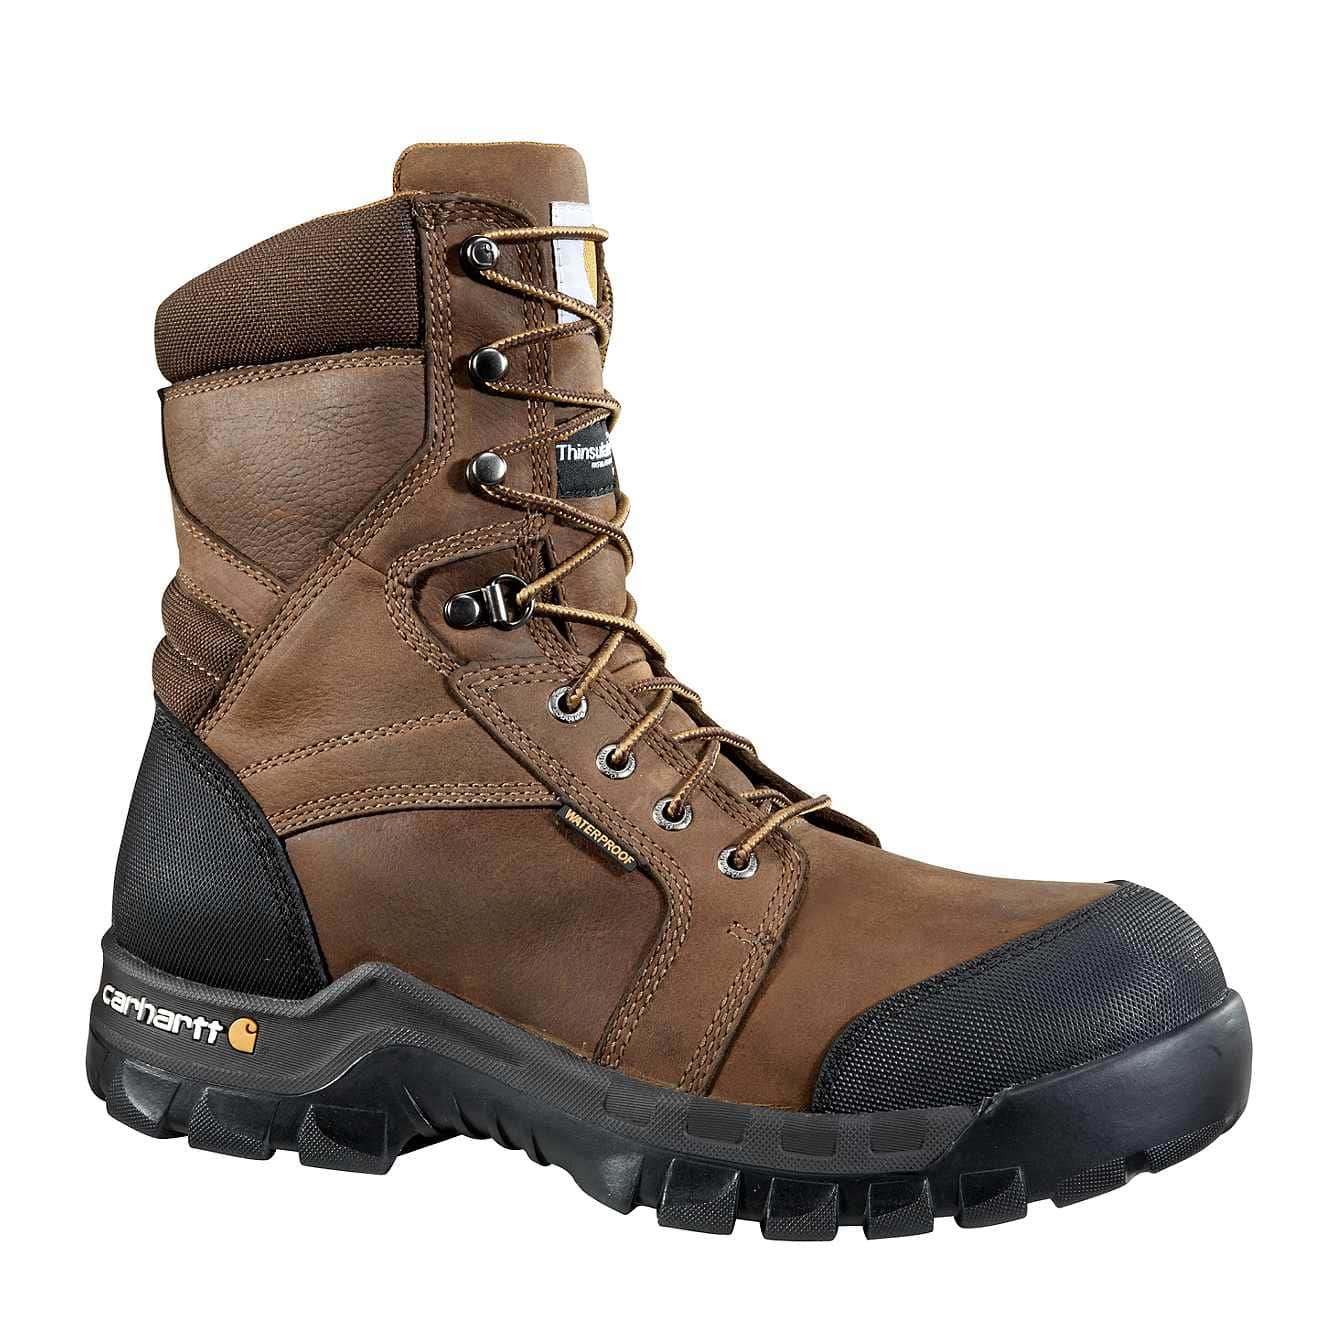 Insulated Steel Toe Work Boots